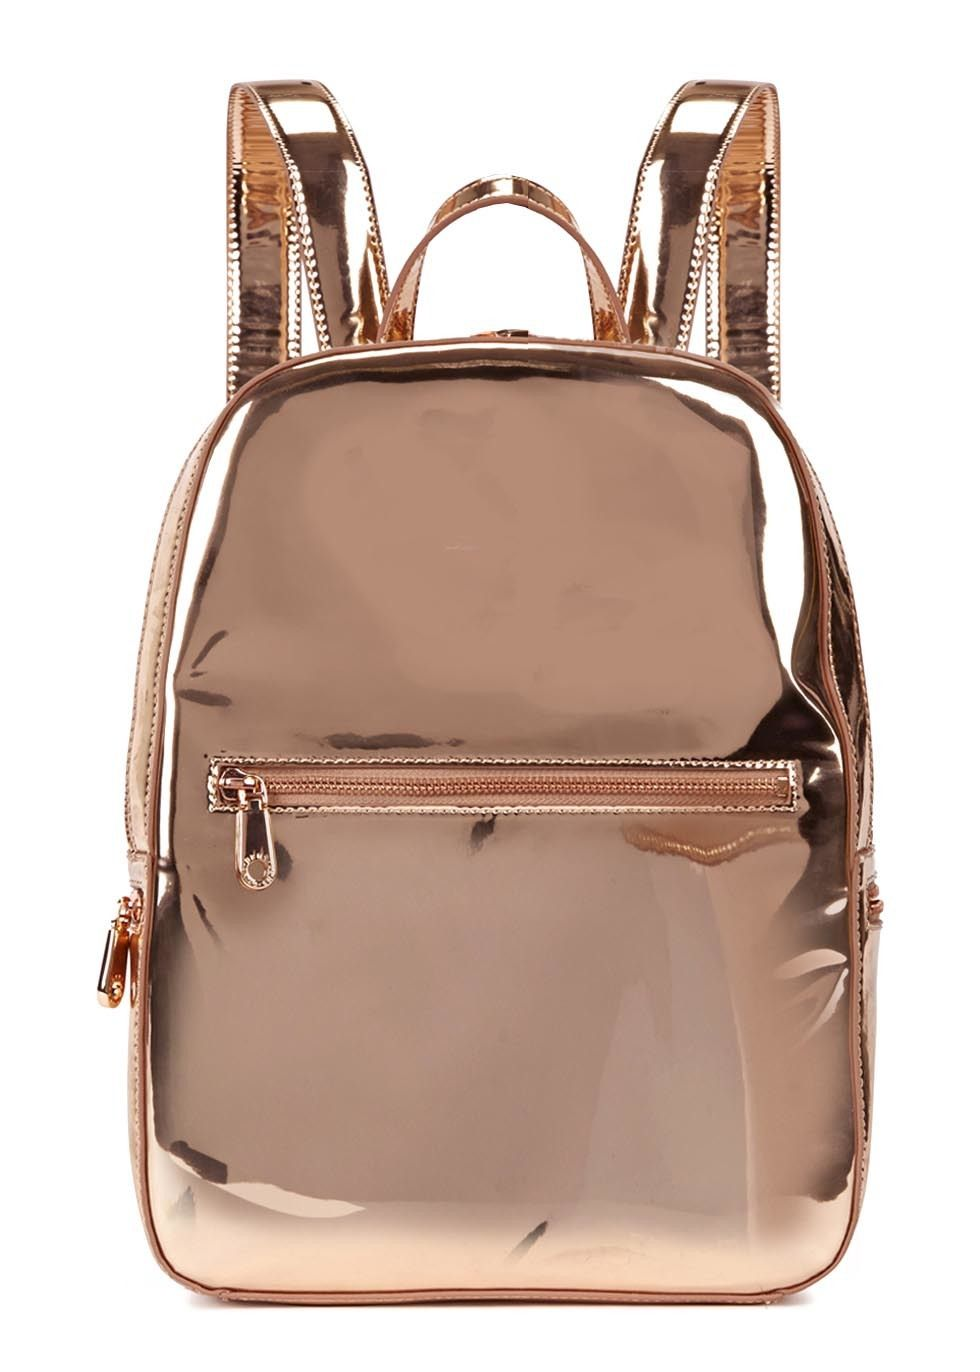 506c49869ab1 DKNY Rose Gold Leather Backpack - £220.00